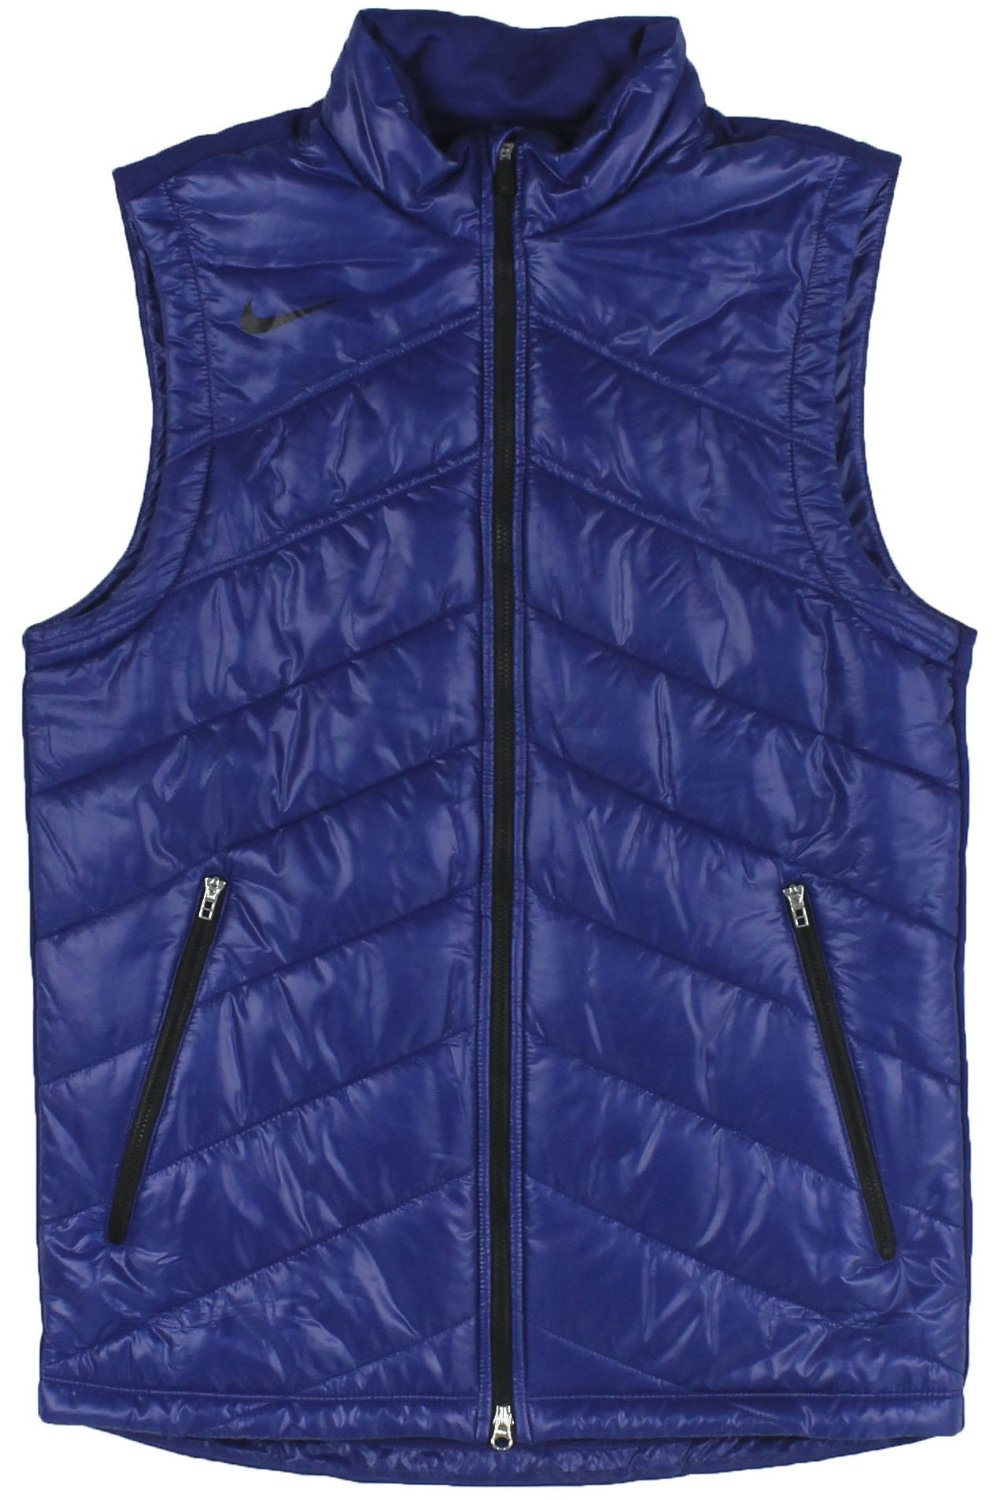 Mens Nike Thermal Mapping Golf Vests